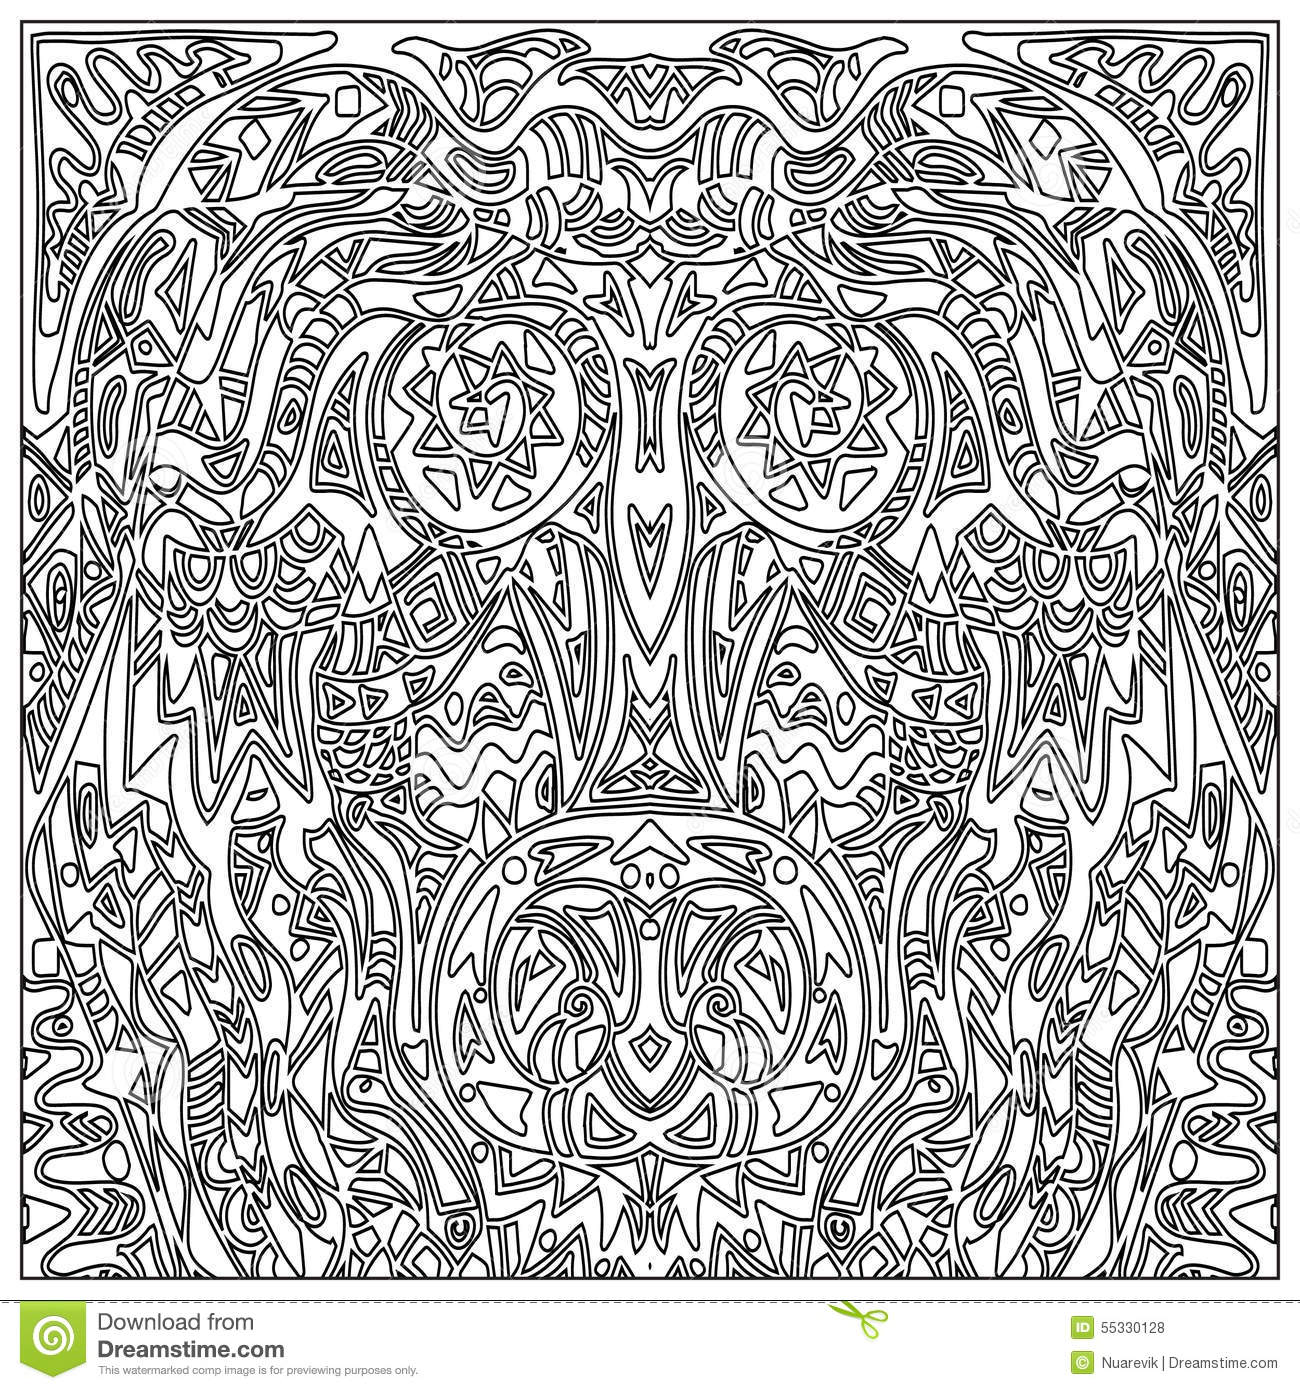 Tribal coloring zentangle stock illustration image 55330128 for Tribal pattern coloring pages